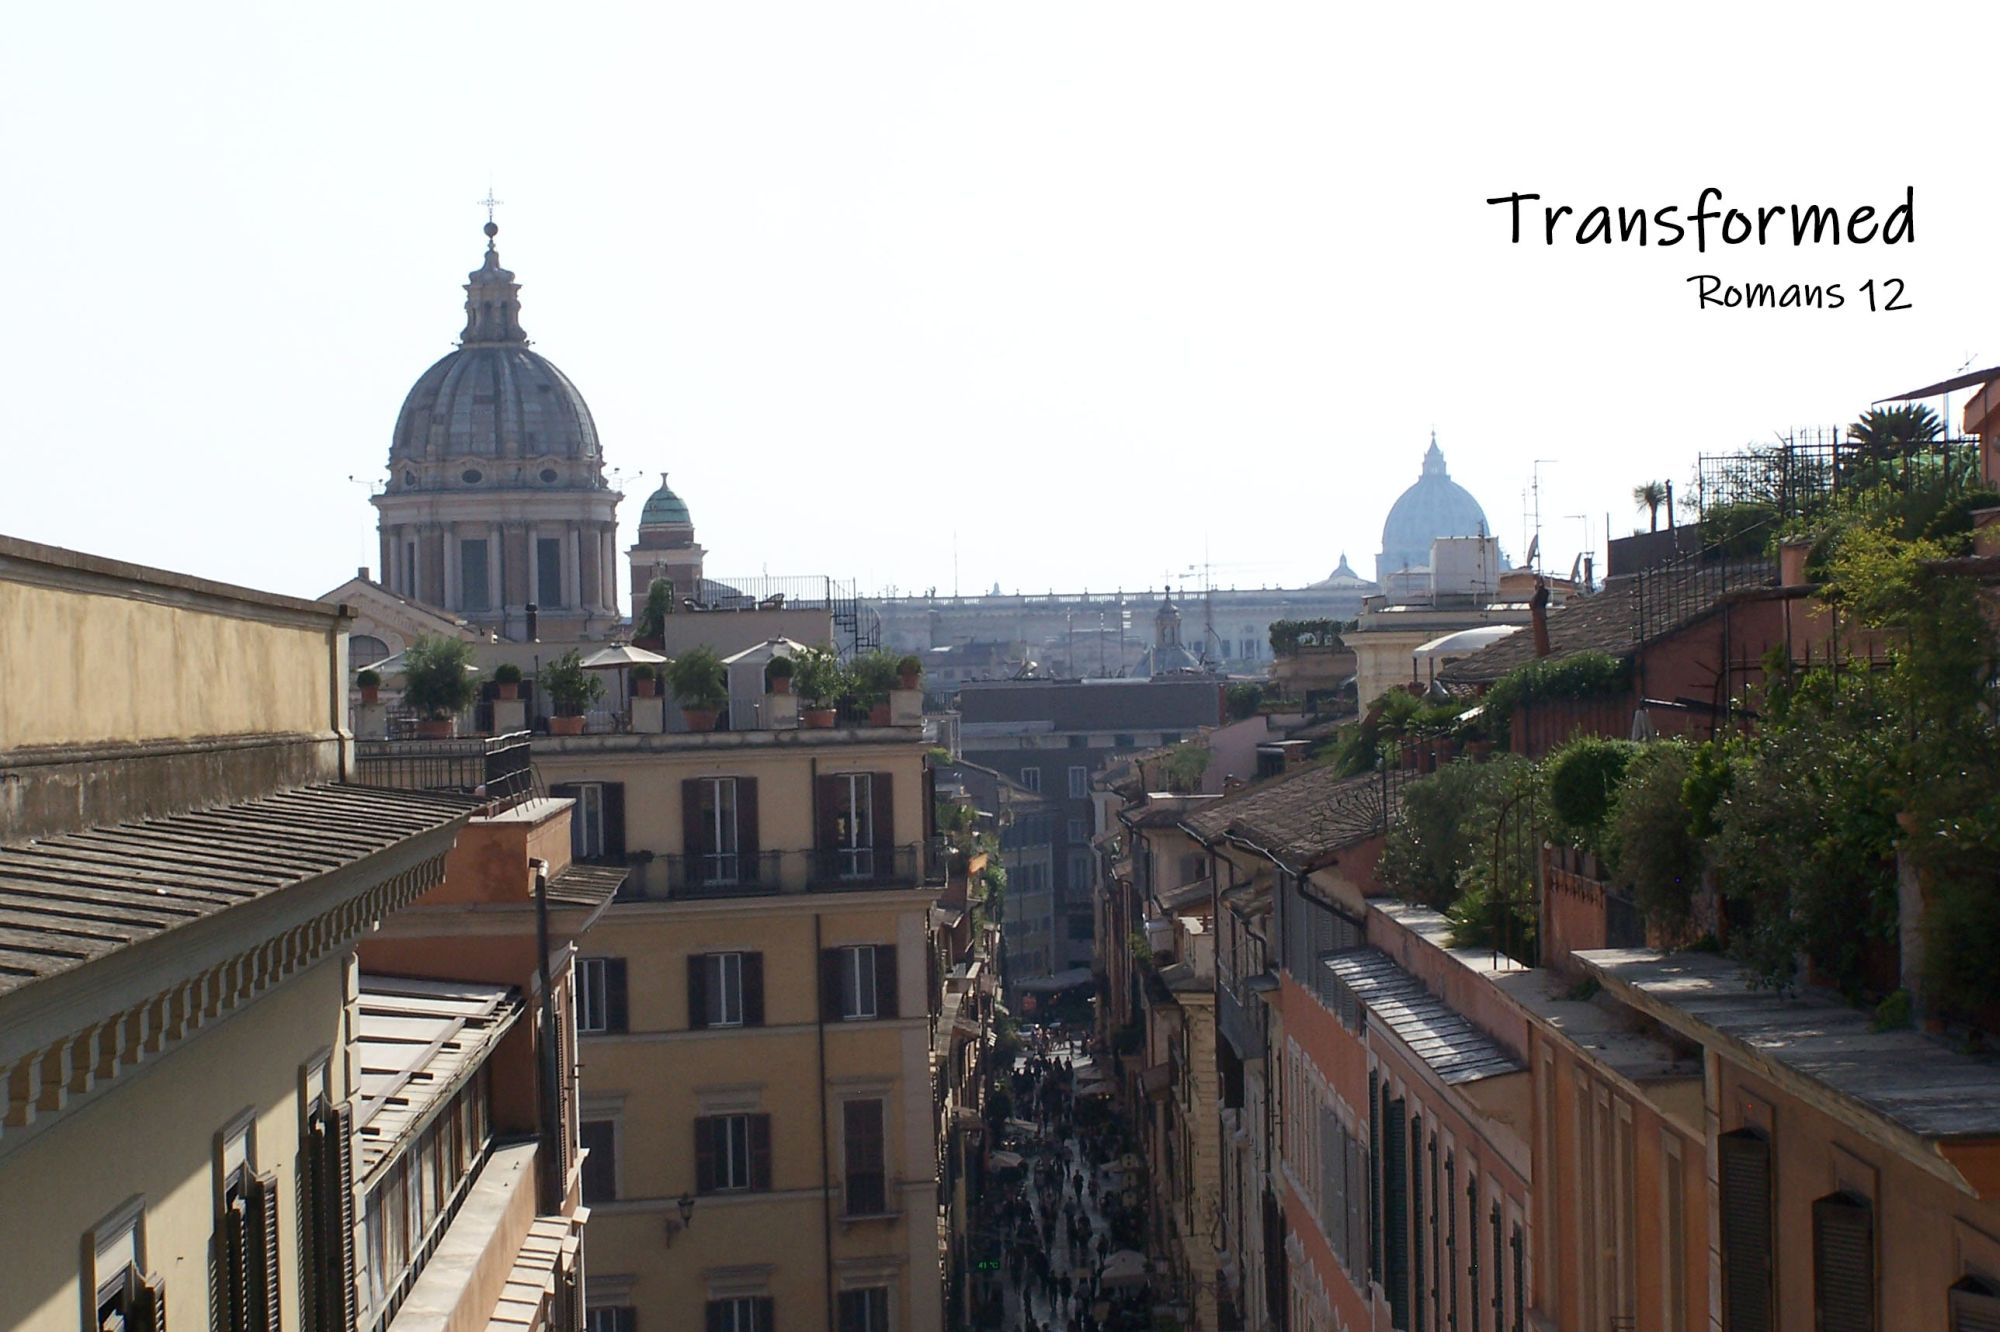 Transformed - Romans 12 - Rome Skyline